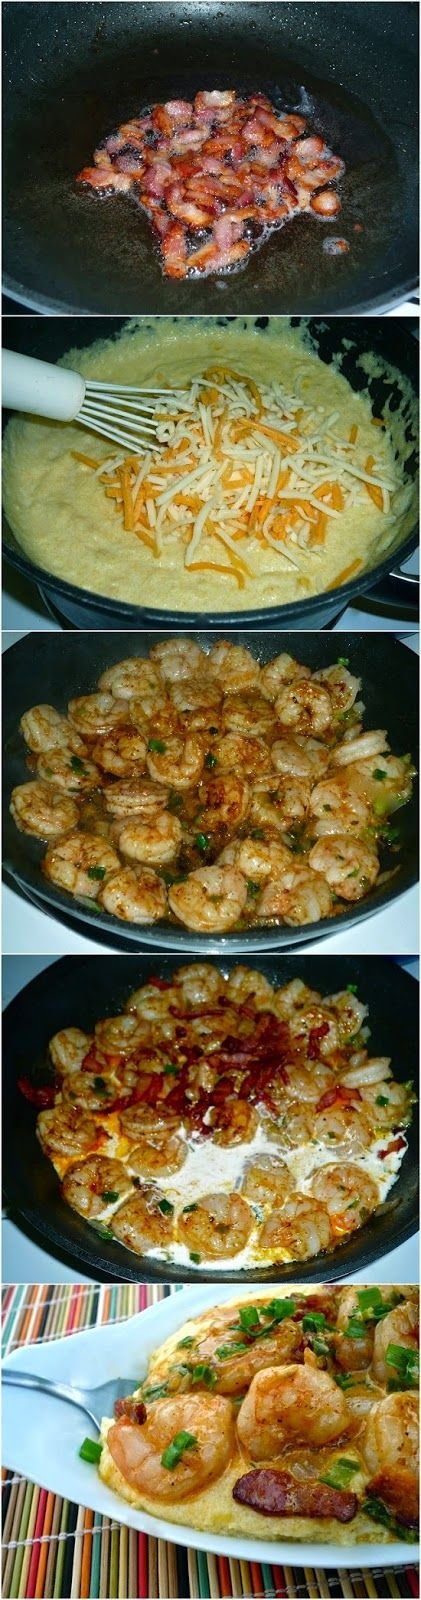 Cheesy Shrimp and Grits. Other pinner: Nom. I mean wow. So good. Did not add heavy cream at end. Didn't need it. Make sure to really pour in the cornmeal slowly otherwise you get some lumps. Delicious. Incredible. Bravo